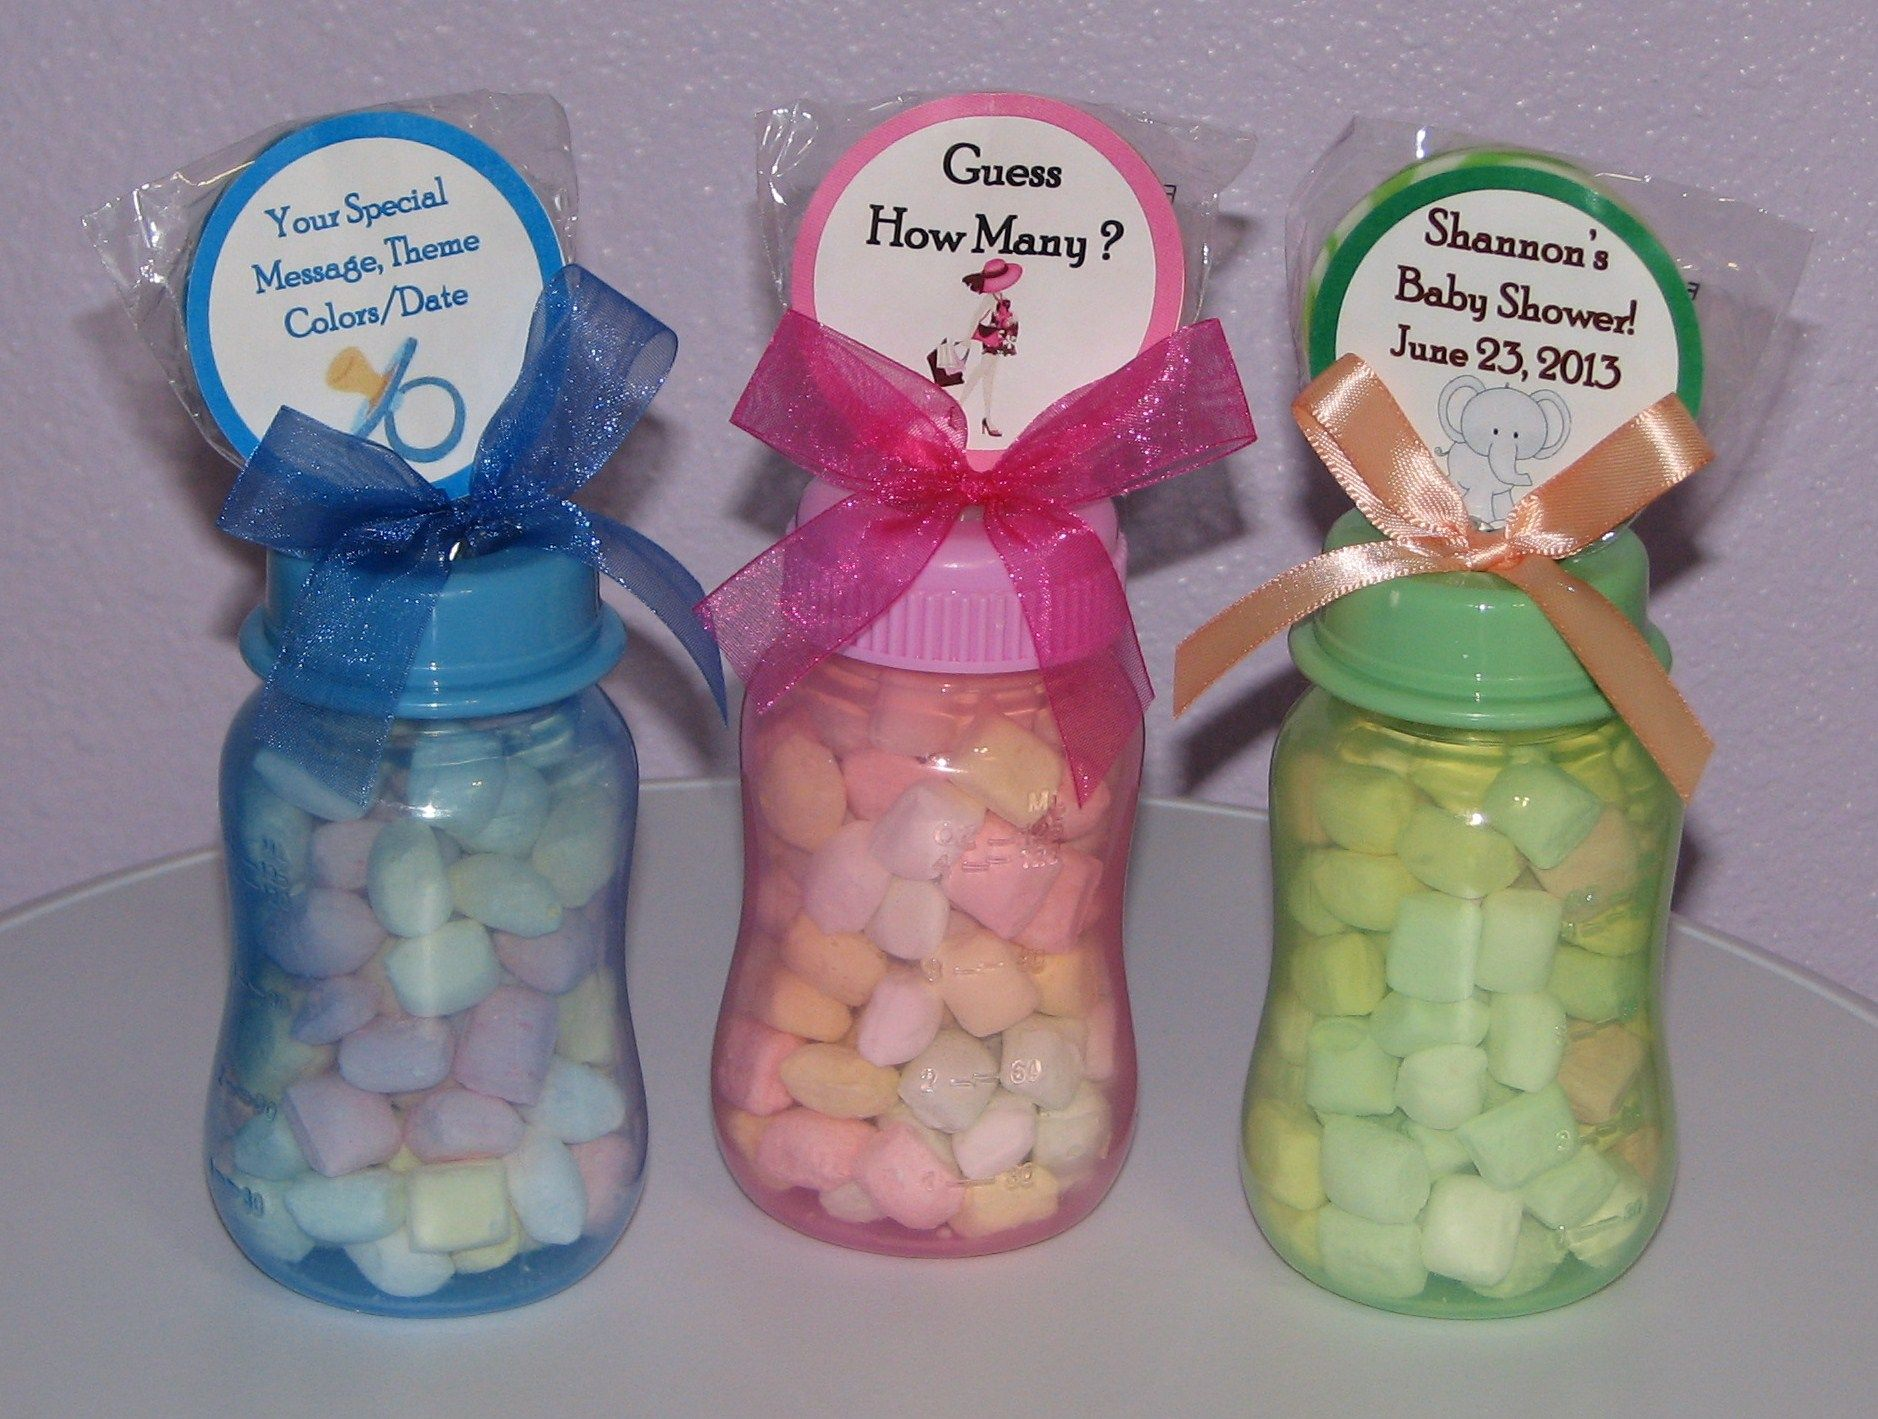 Baby Shower Favors To Make Yourself Baby Bottle Gifts For Baby